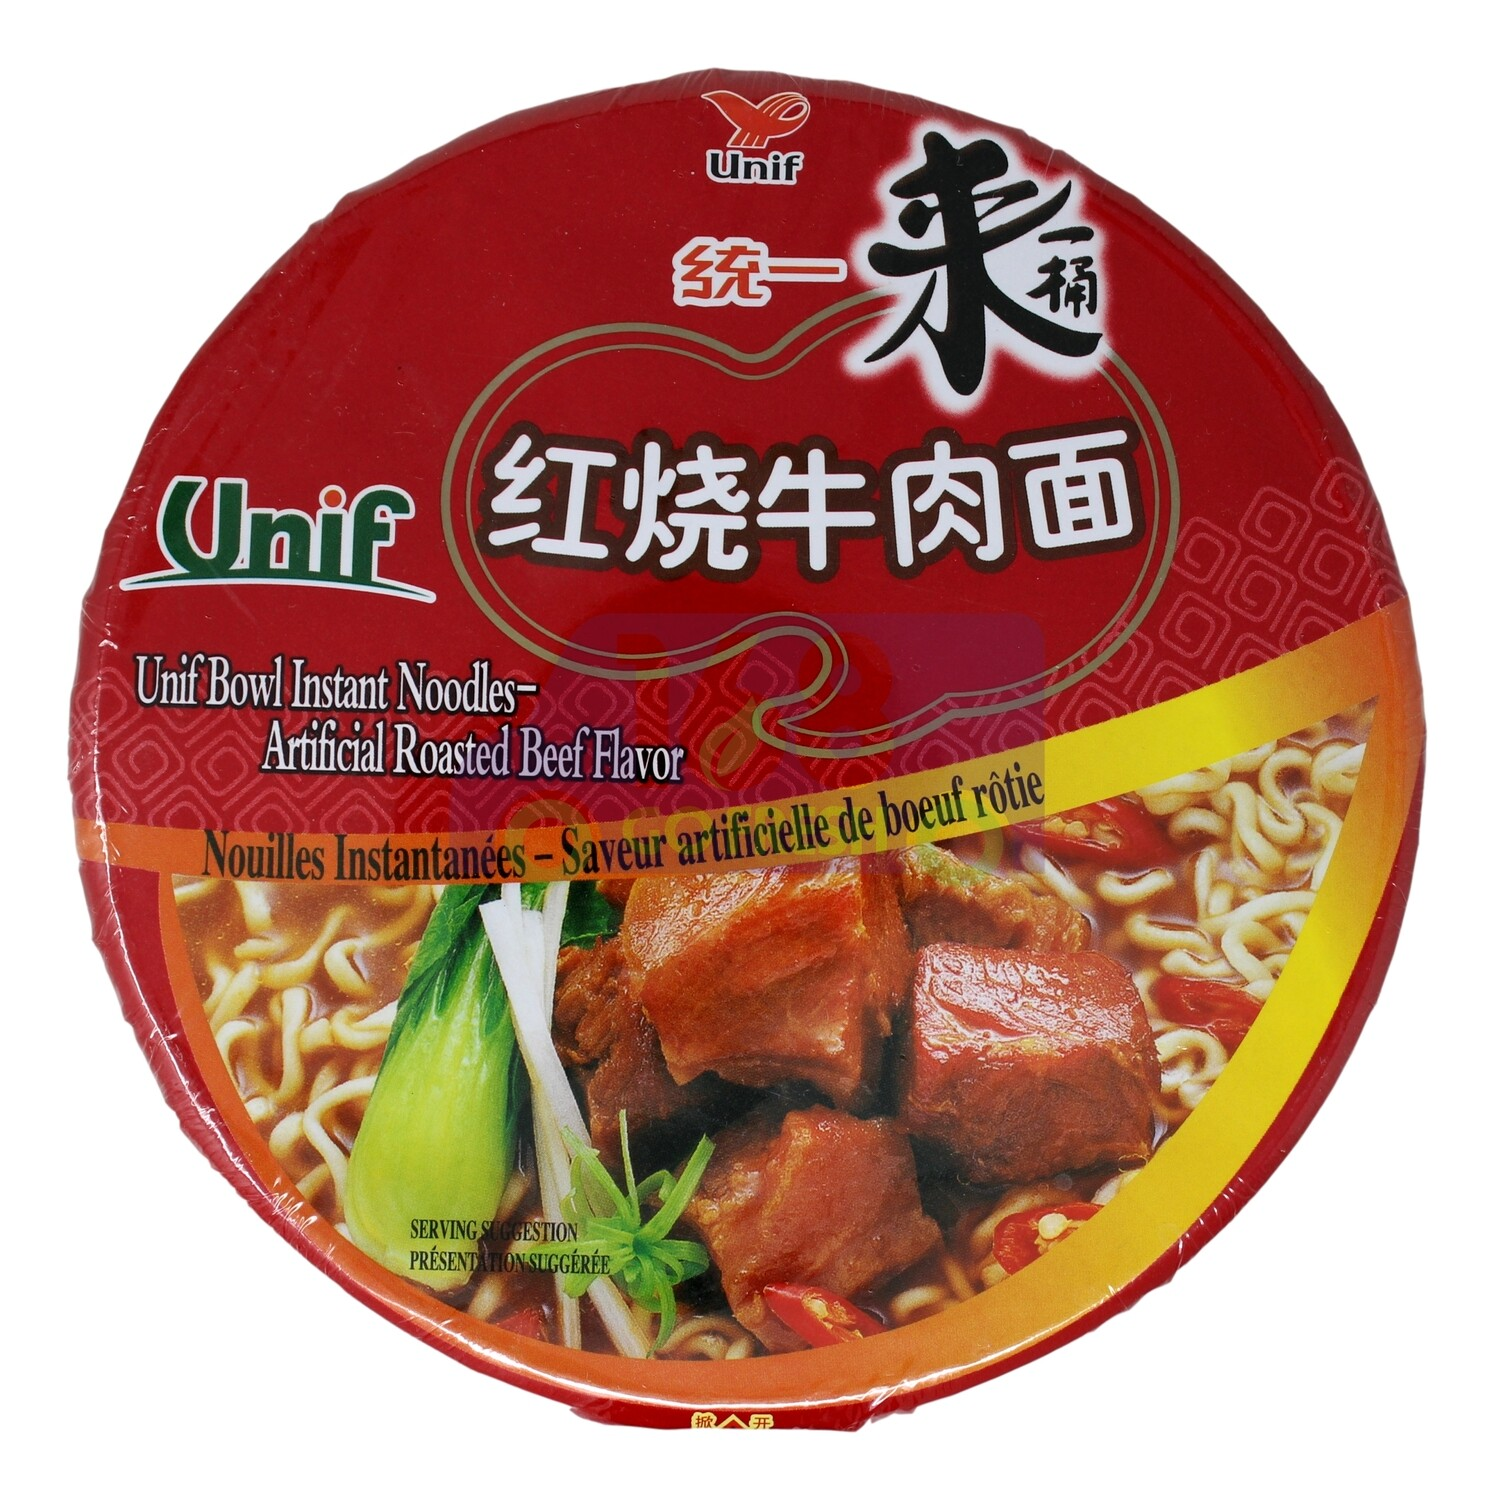 Unif Bowl Instant Noodles Roasted Beef Flv统一 红烧牛肉面(碗装)